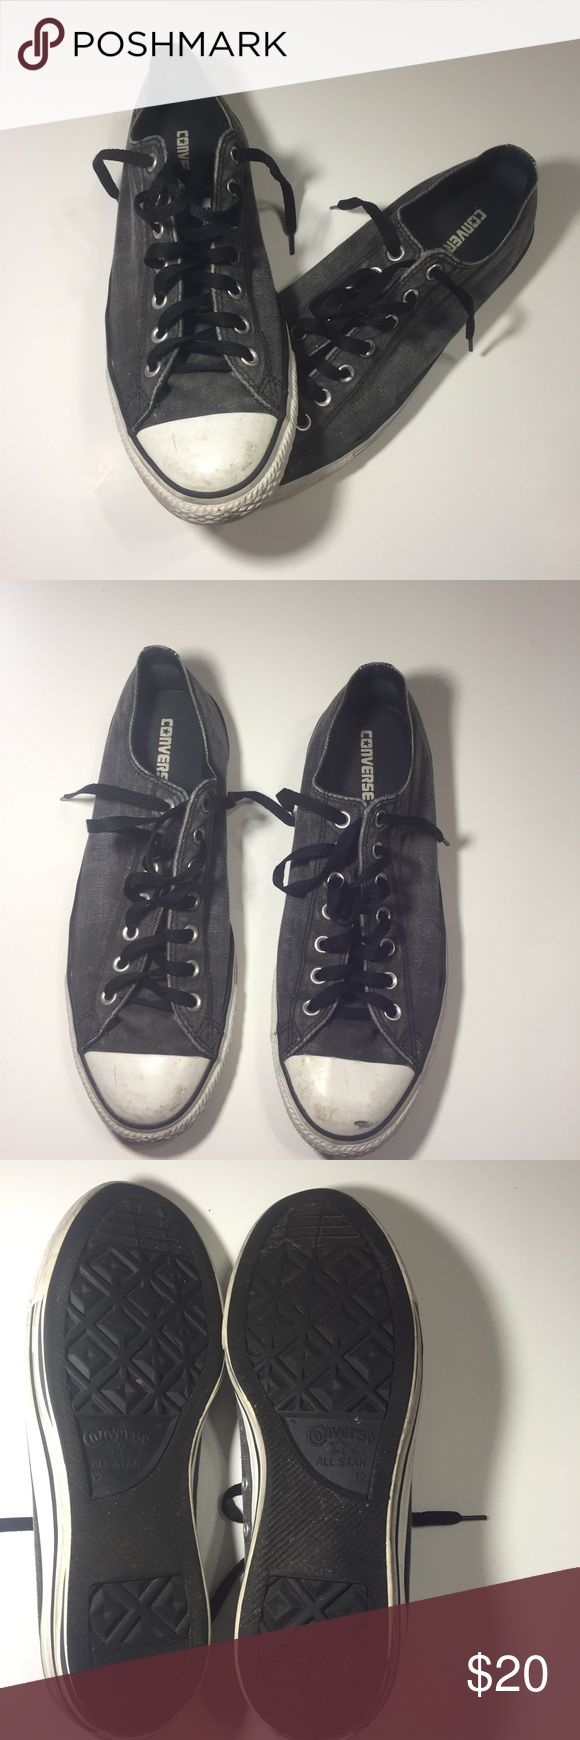 Men's converse Chuck Taylor All Star low top Men's converse Chuck Taylor All Star low top Chuck Taylor All Star low tops Gray Size 12 Retails for $55 No box Great condition Converse Shoes Sneakers